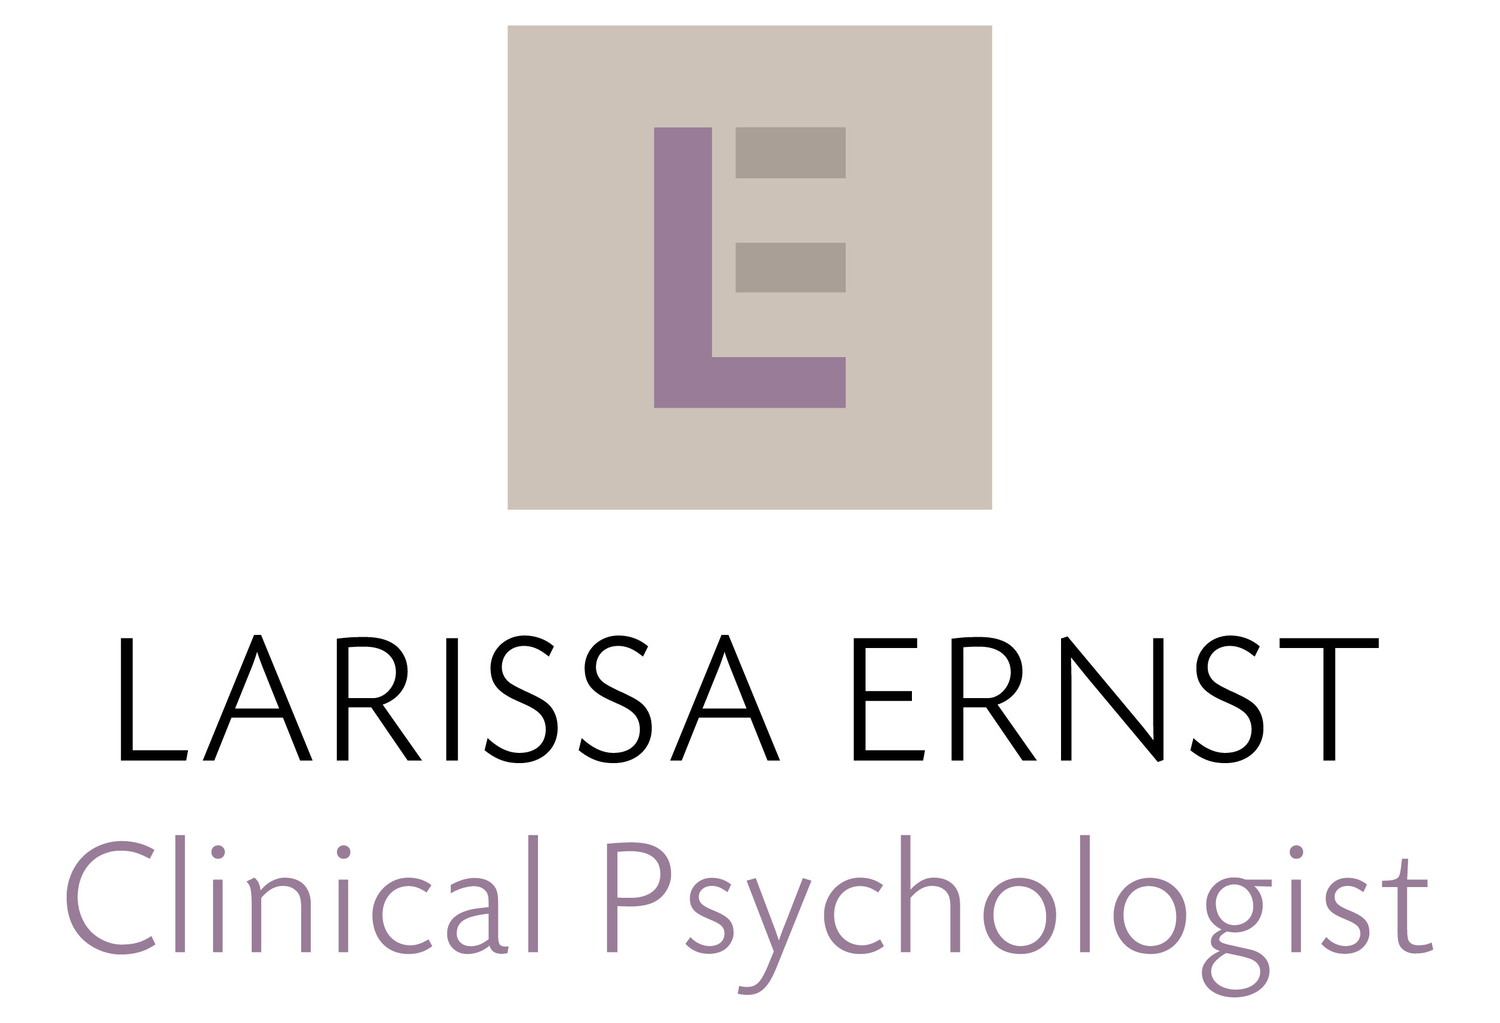 Larissa Ernst | Clinical Psychologist